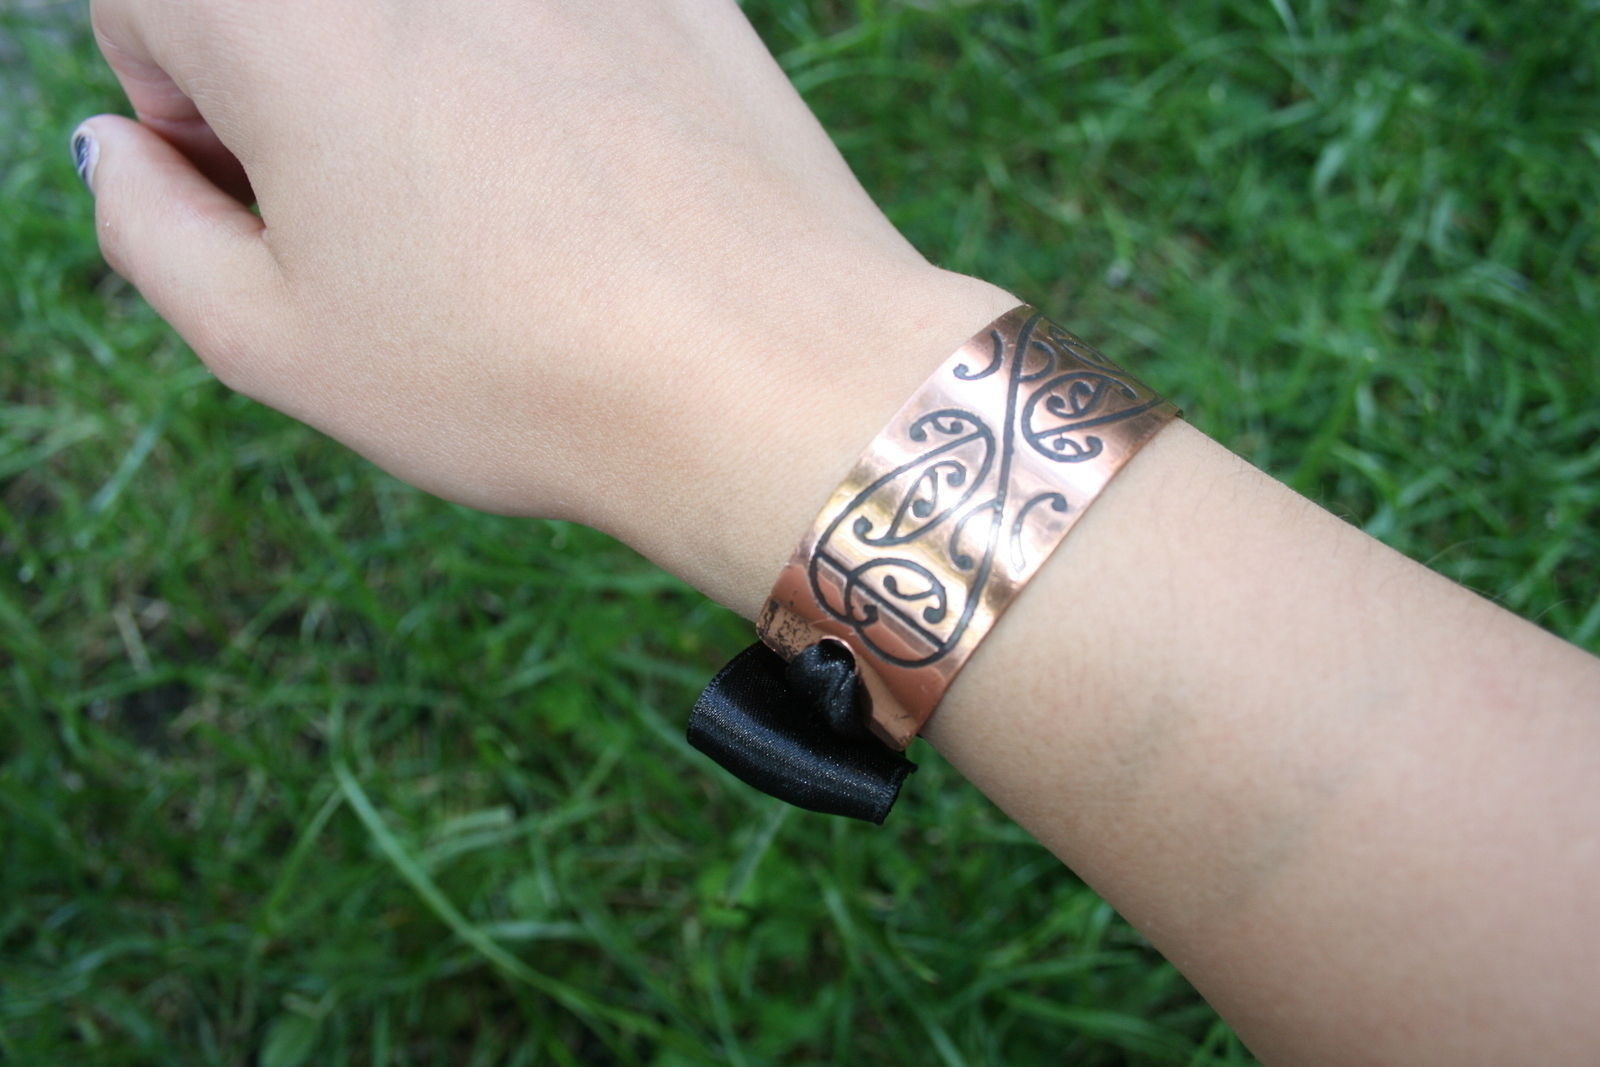 From Napkin Ring To Bracelet · How To Make A Recycled Bracelet ...